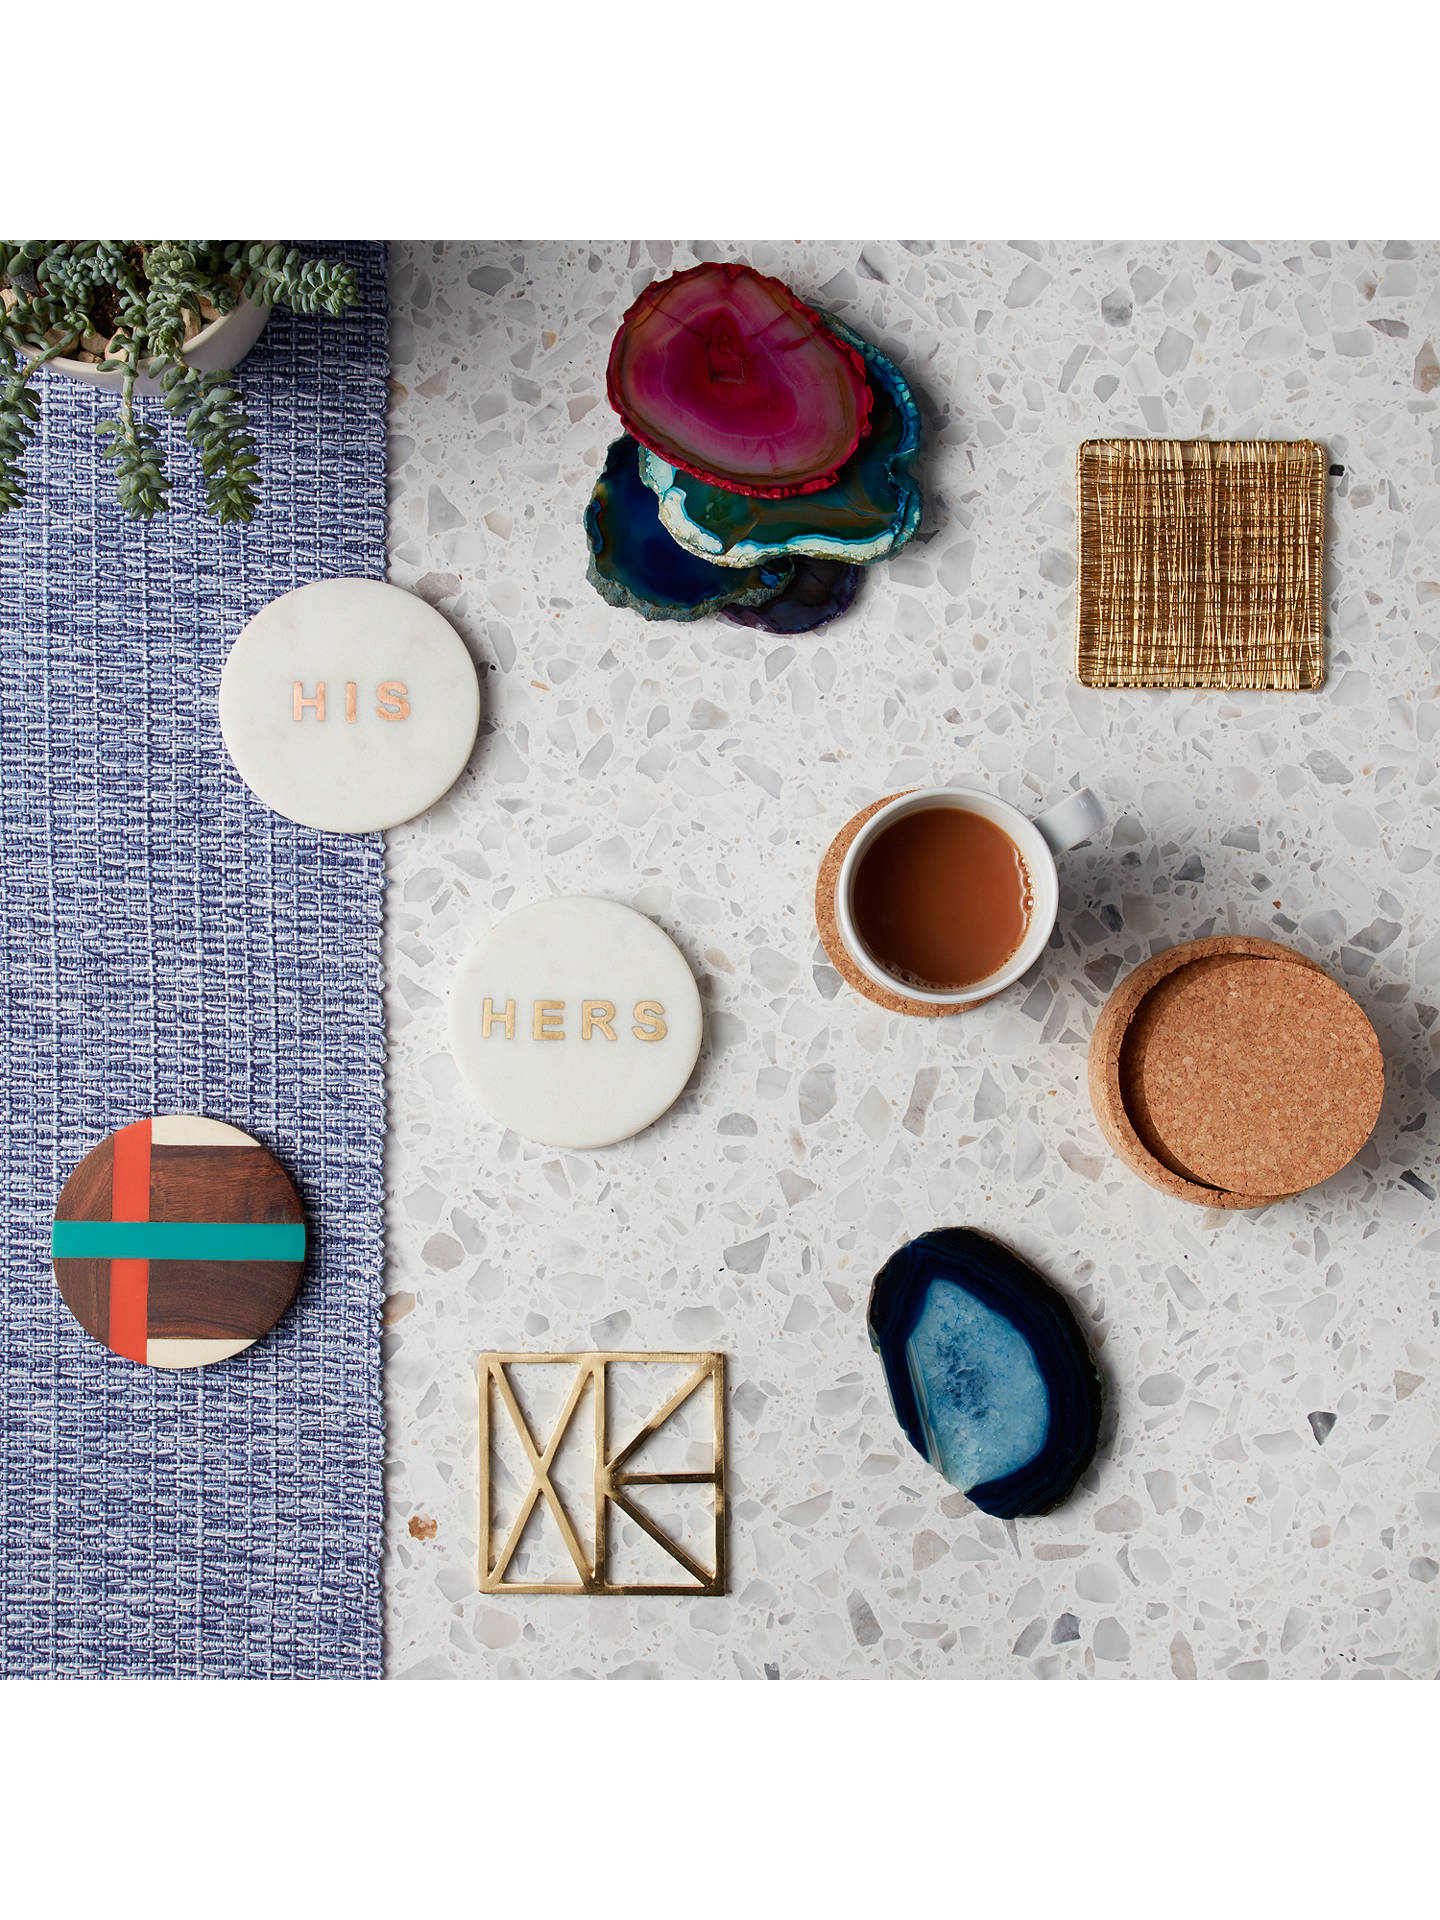 BuyJohn Lewis & Partners 'His' Marble Coaster Online at johnlewis.com